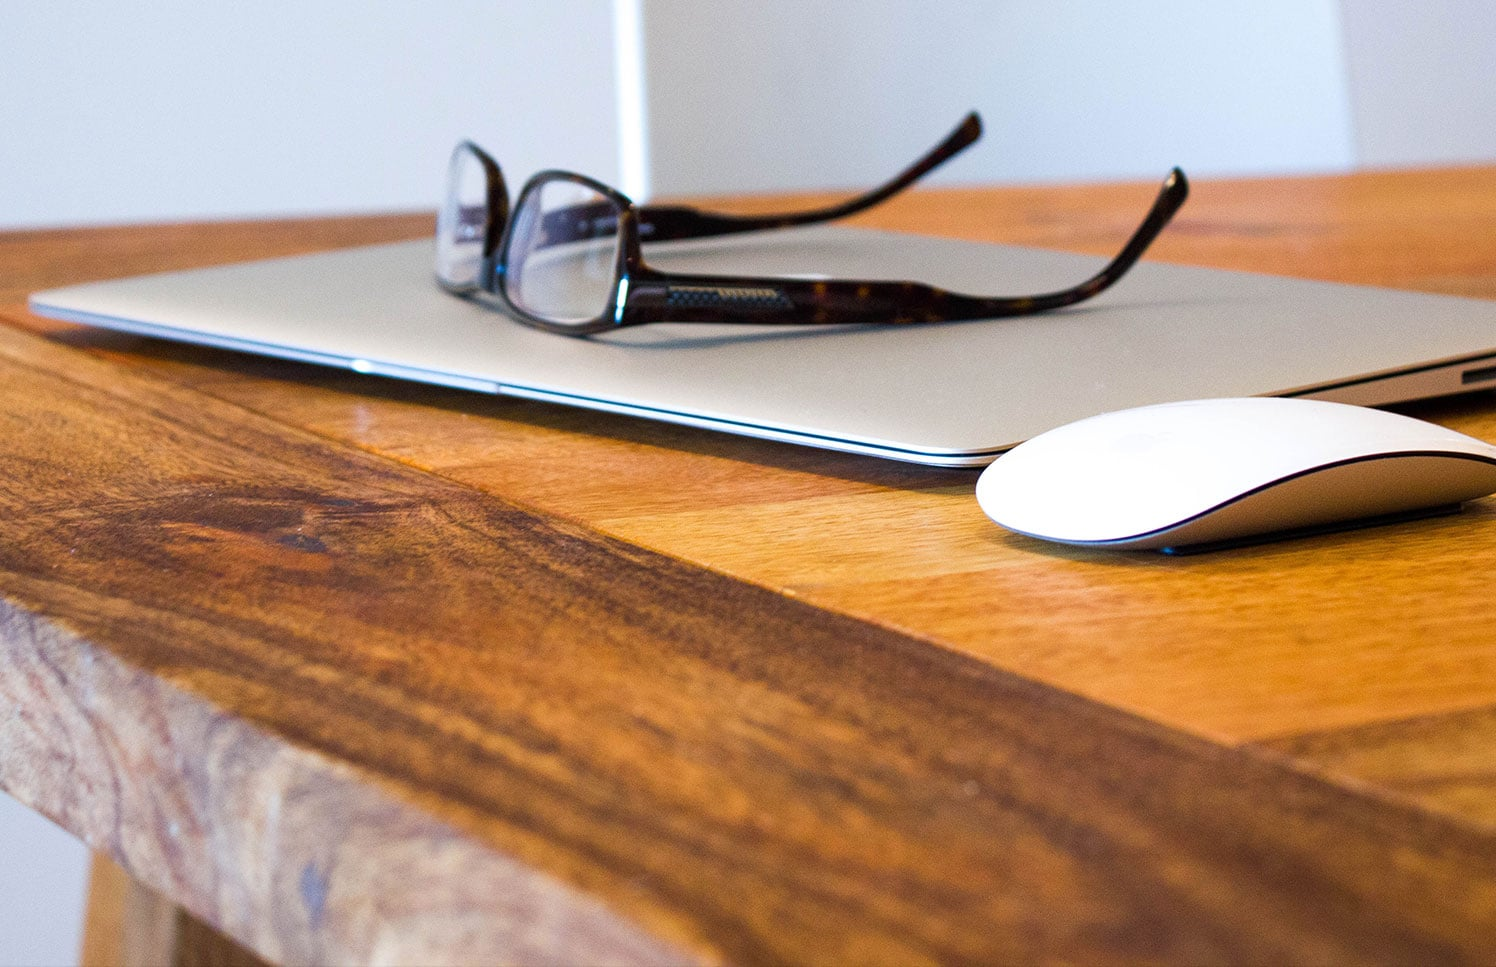 Photo of a laptop, mouse, and glasses on a table